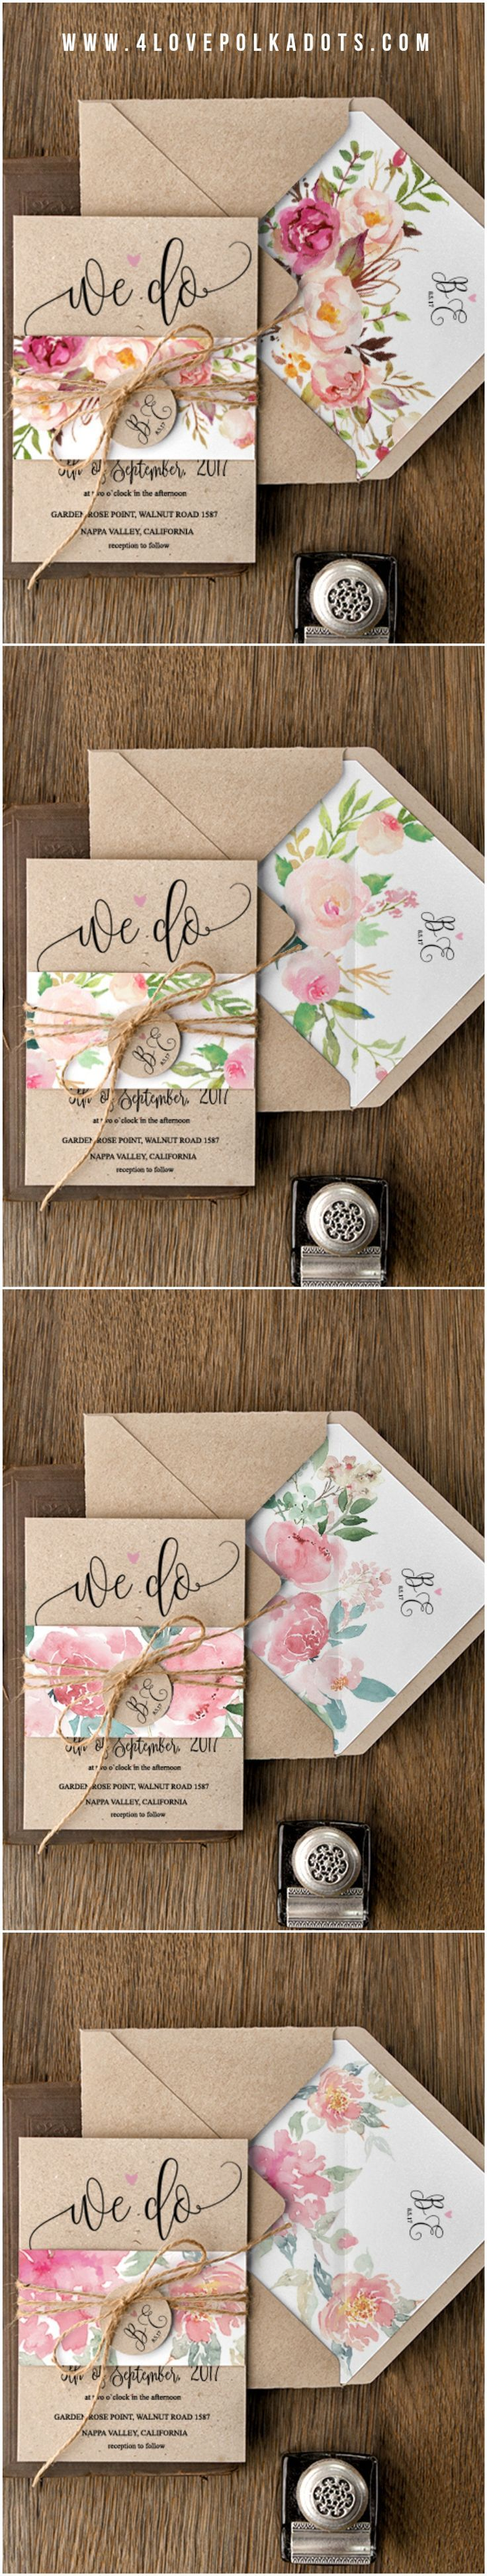 Keep this website! Most inexpensive invites I've found!                                                                                                                                                                                 More